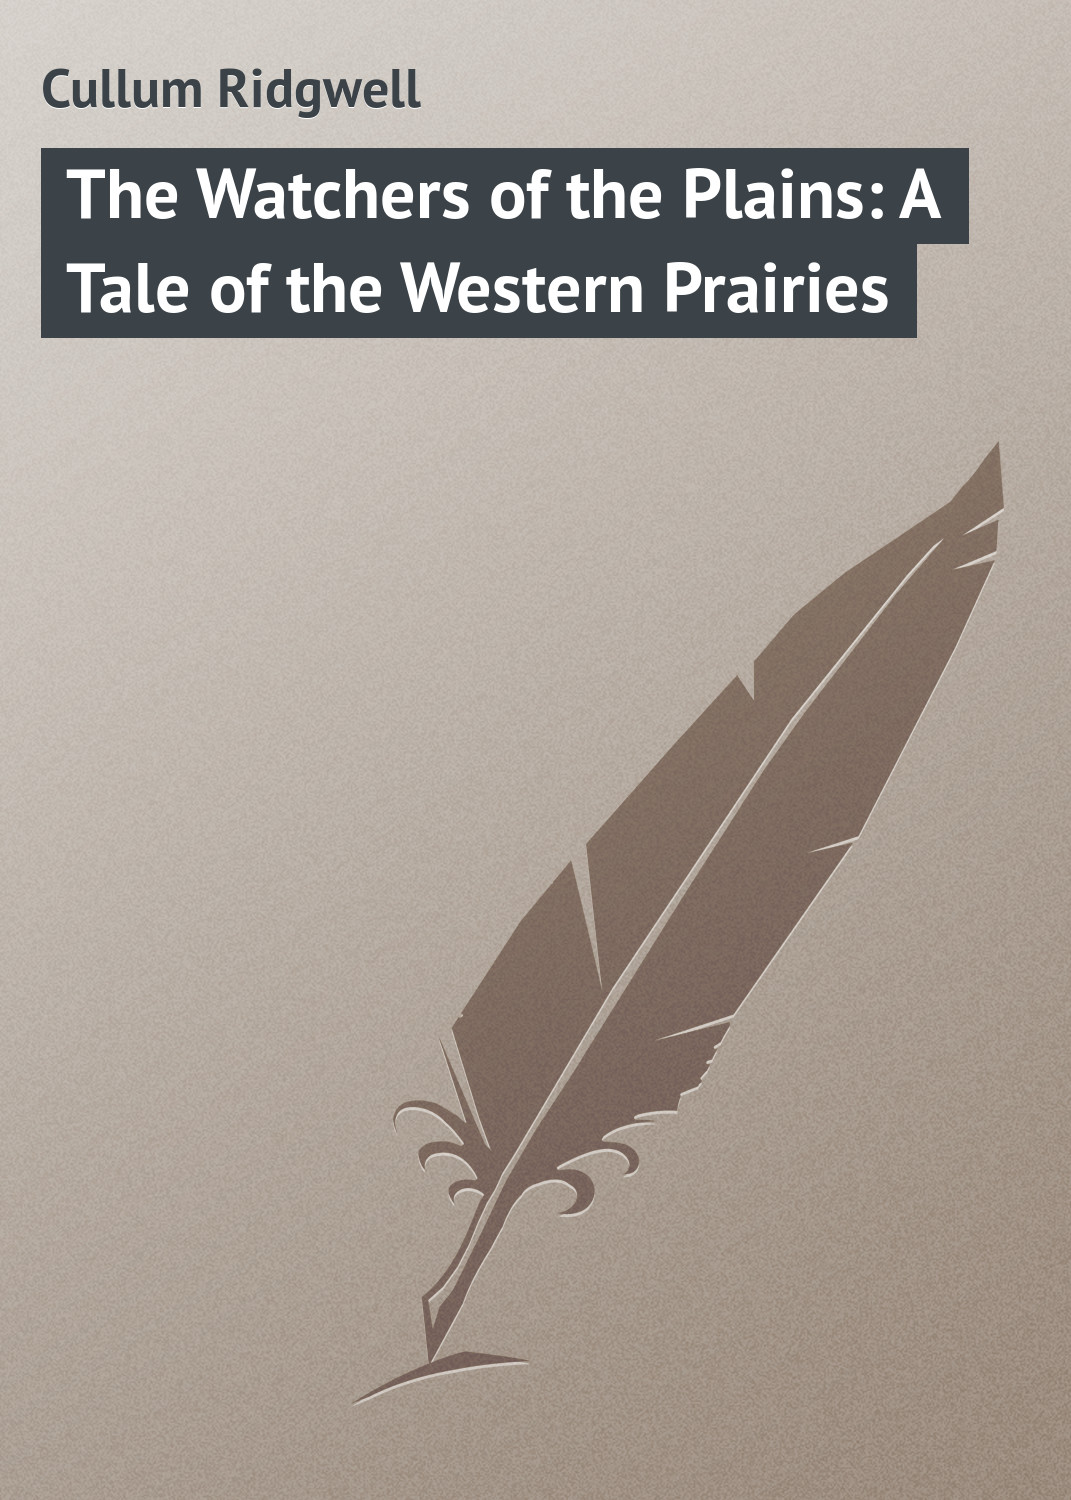 цена Cullum Ridgwell The Watchers of the Plains: A Tale of the Western Prairies онлайн в 2017 году